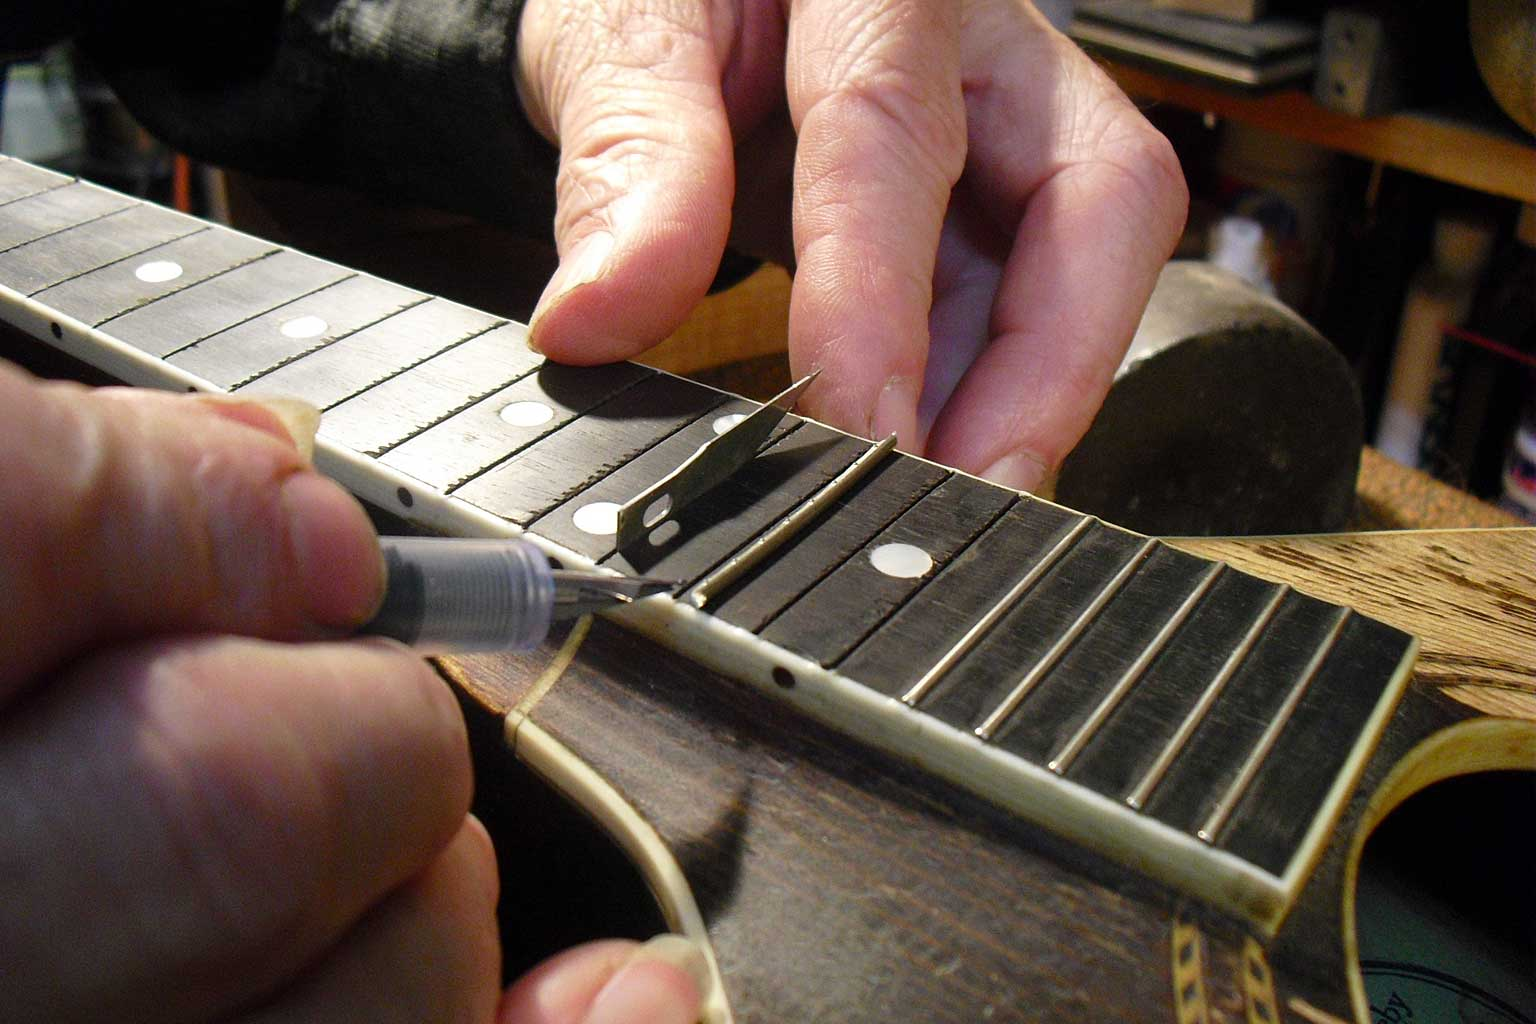 mandolin refret, guitar repair, action adjustment, martin service center, kline music, restoration, mandolin repairs